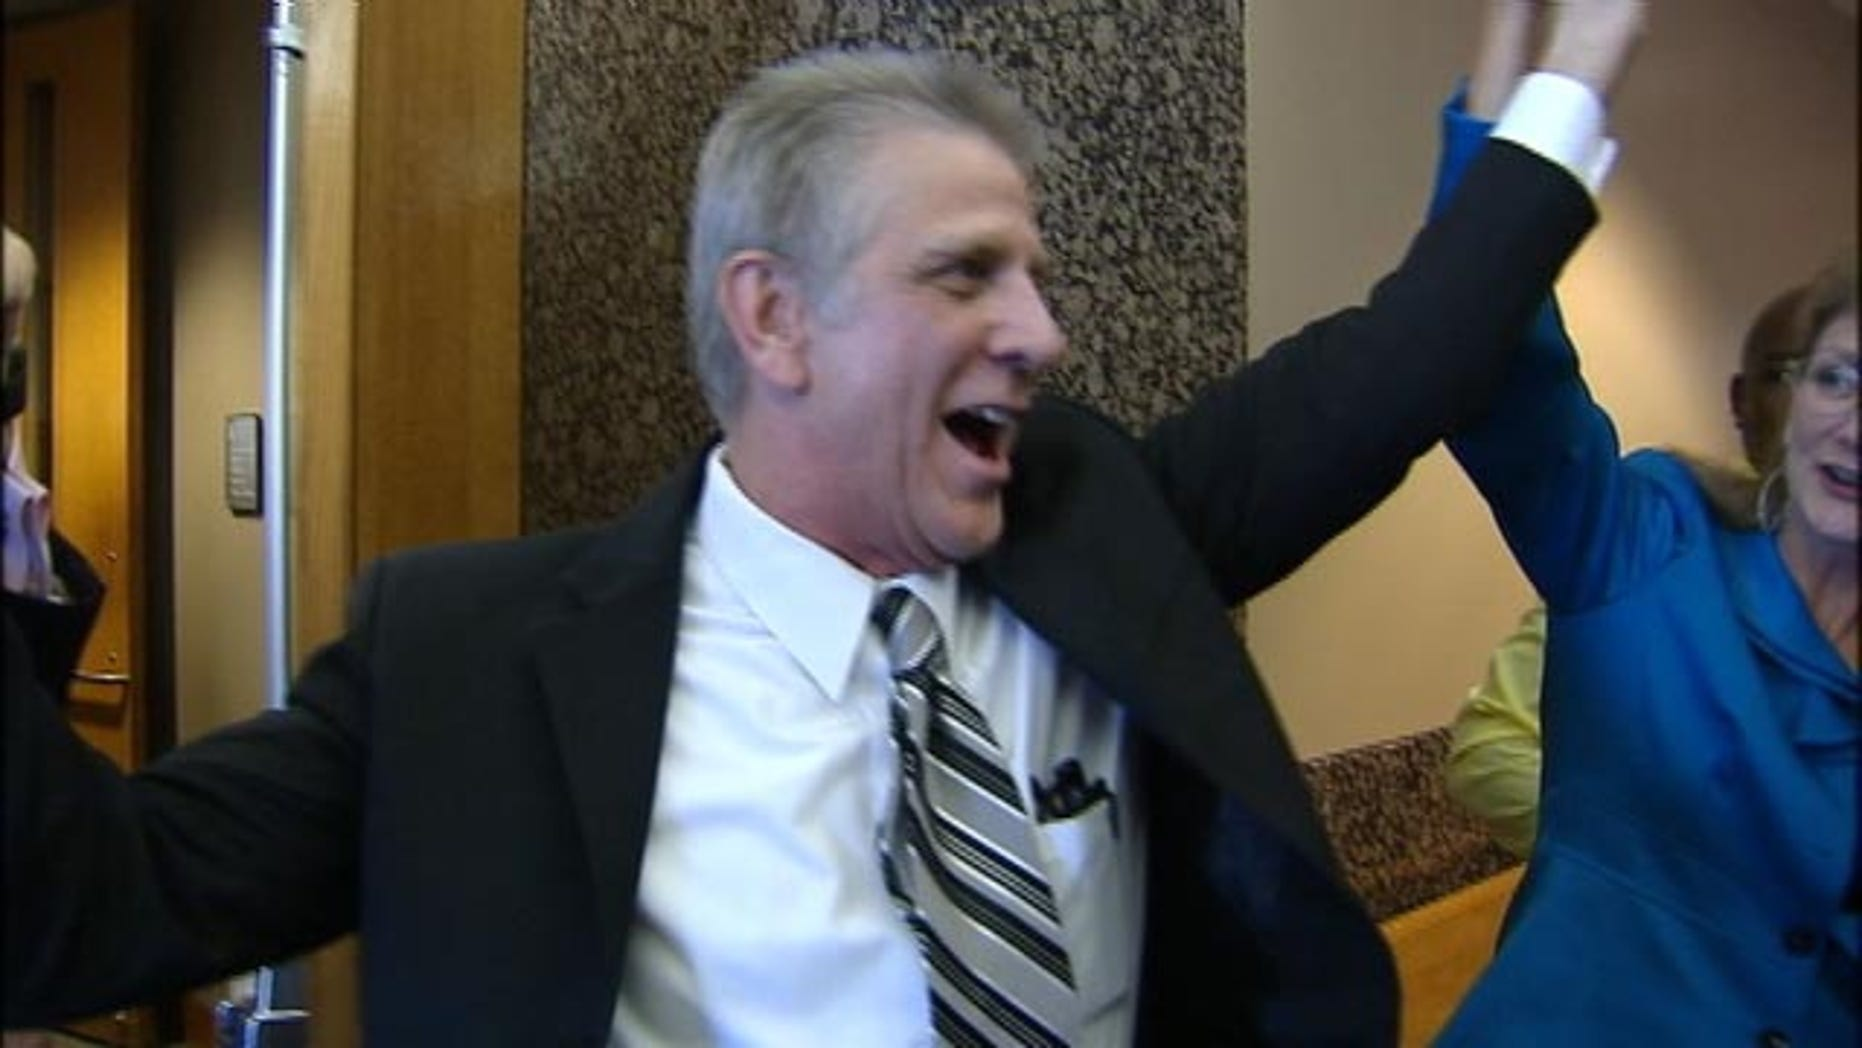 Oct. 12, 2015: Steven Chaney walks out of court in Dallas after his conviction for a 1987 double murder was overturned. (KDFW)